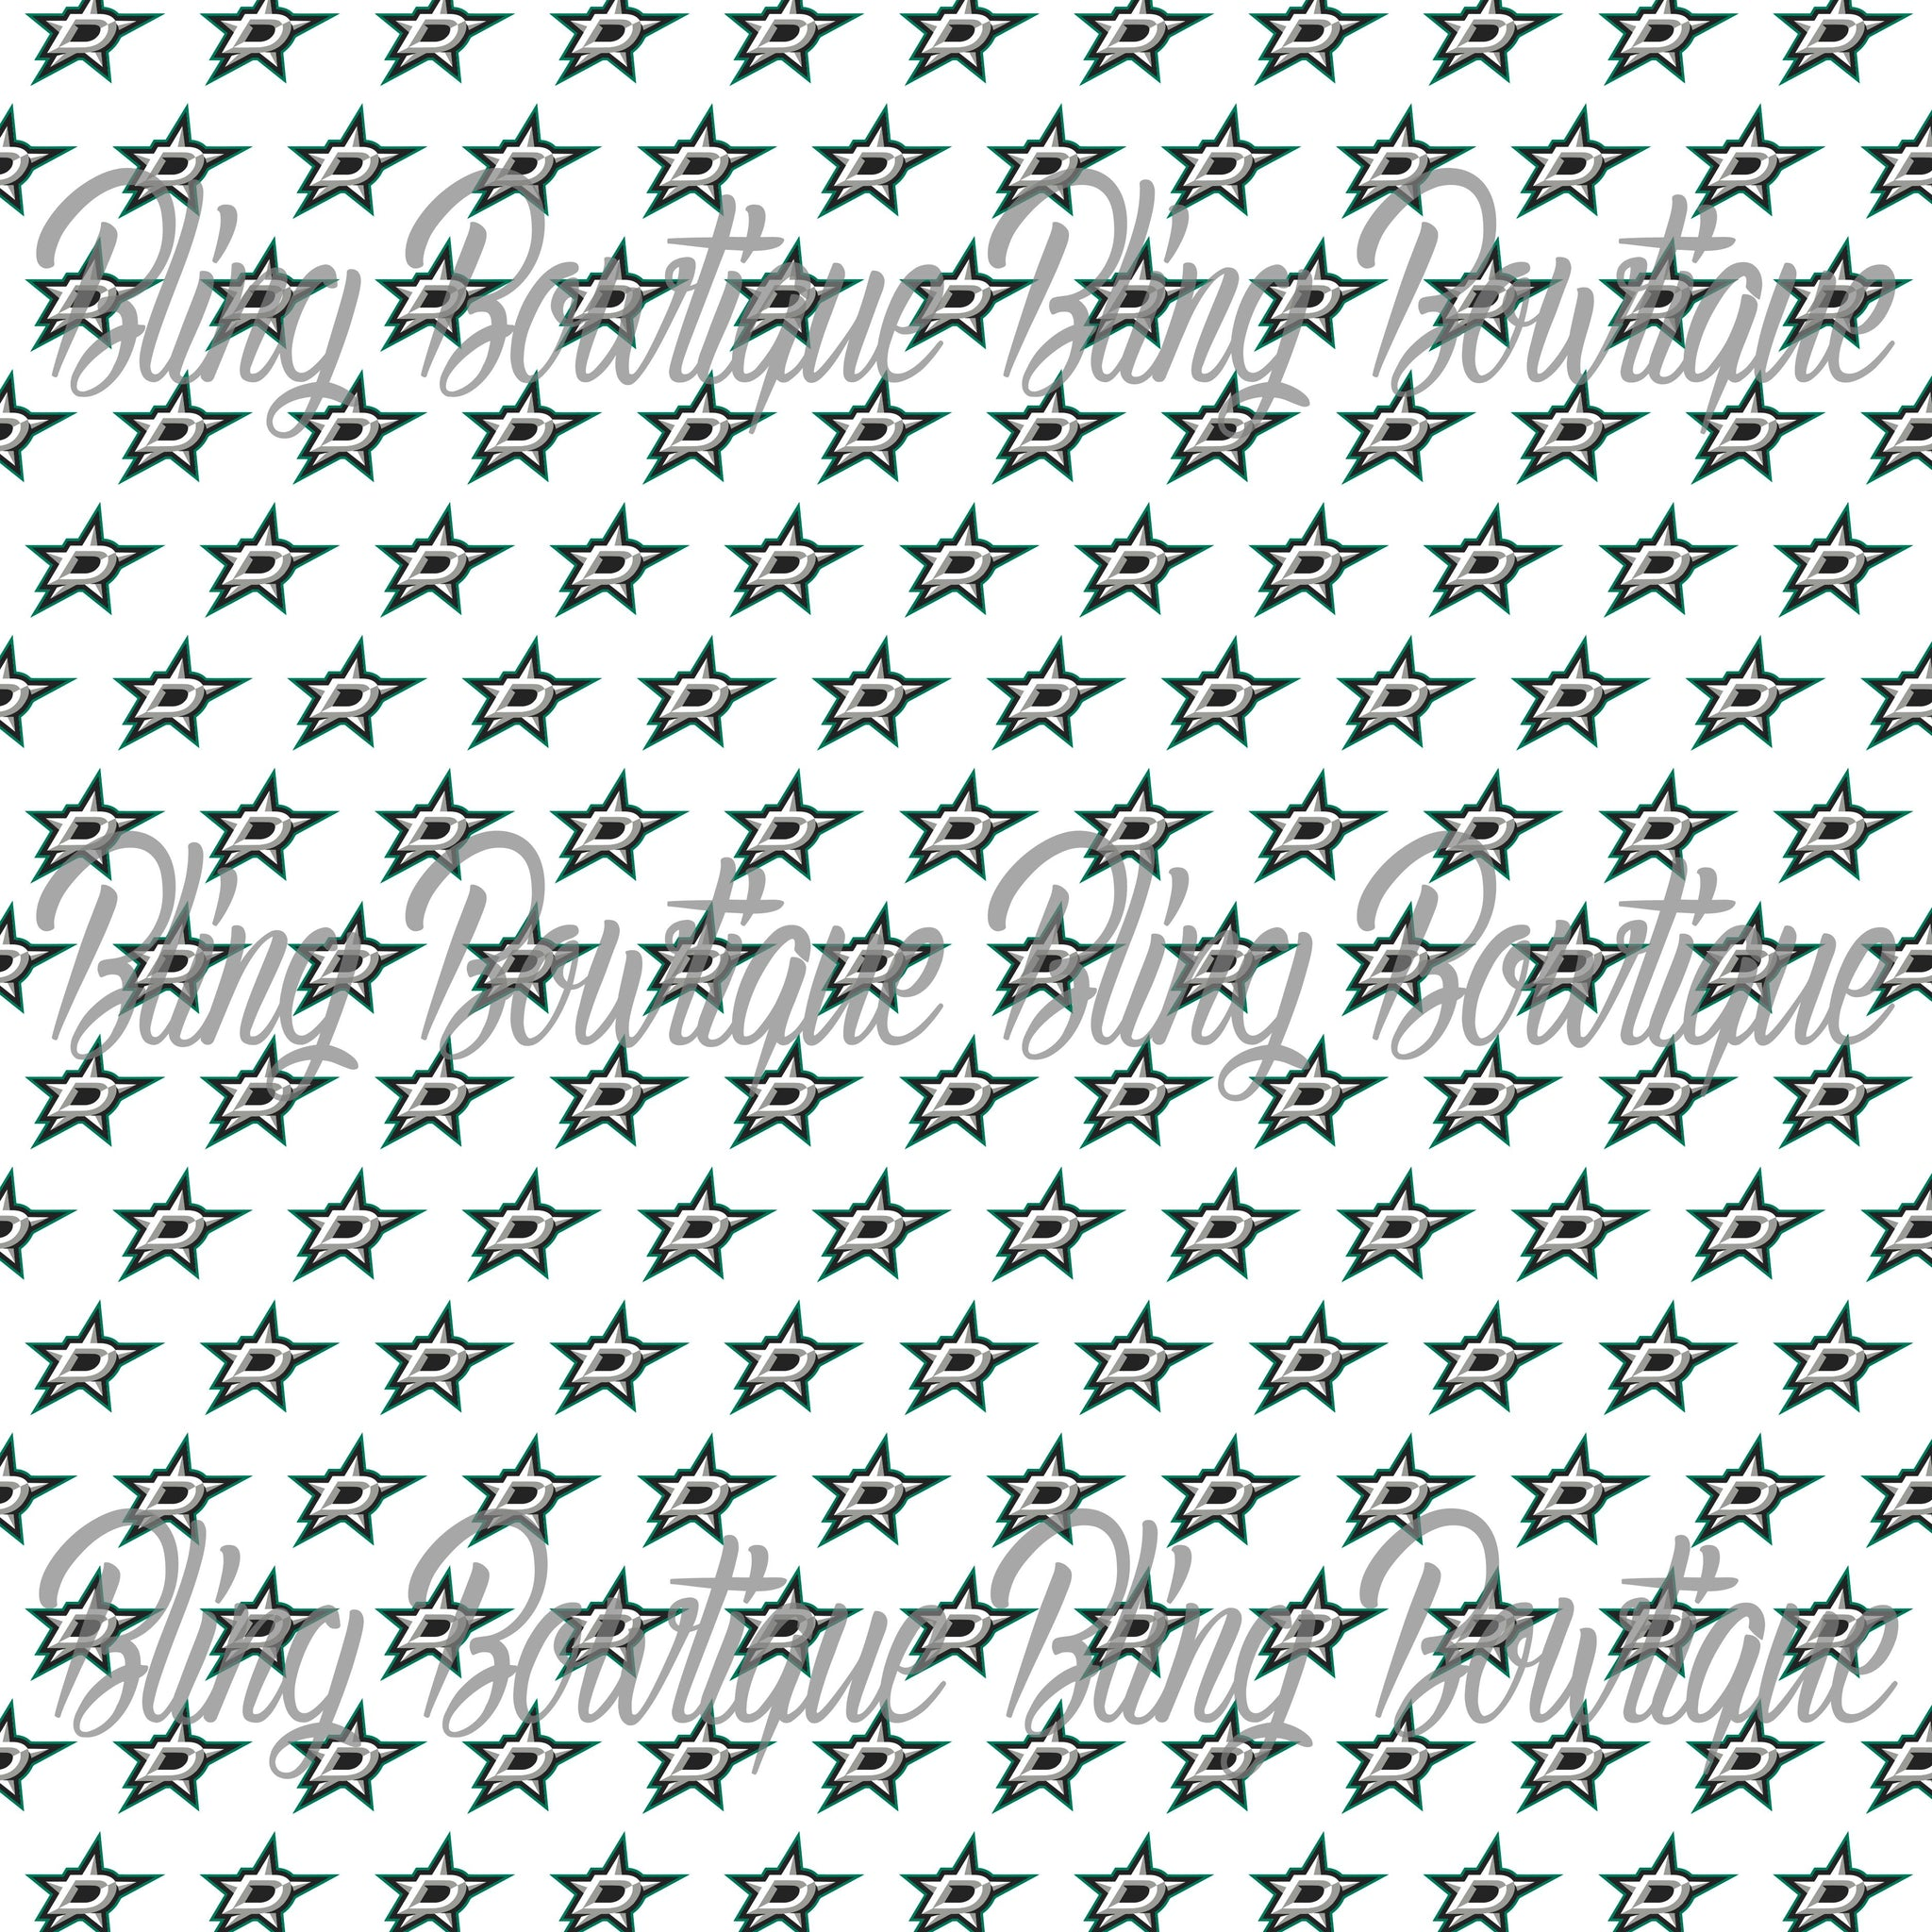 Dallas Stars Printed Glitter Canvas, Regular Canvas, Faux Leather For Bows